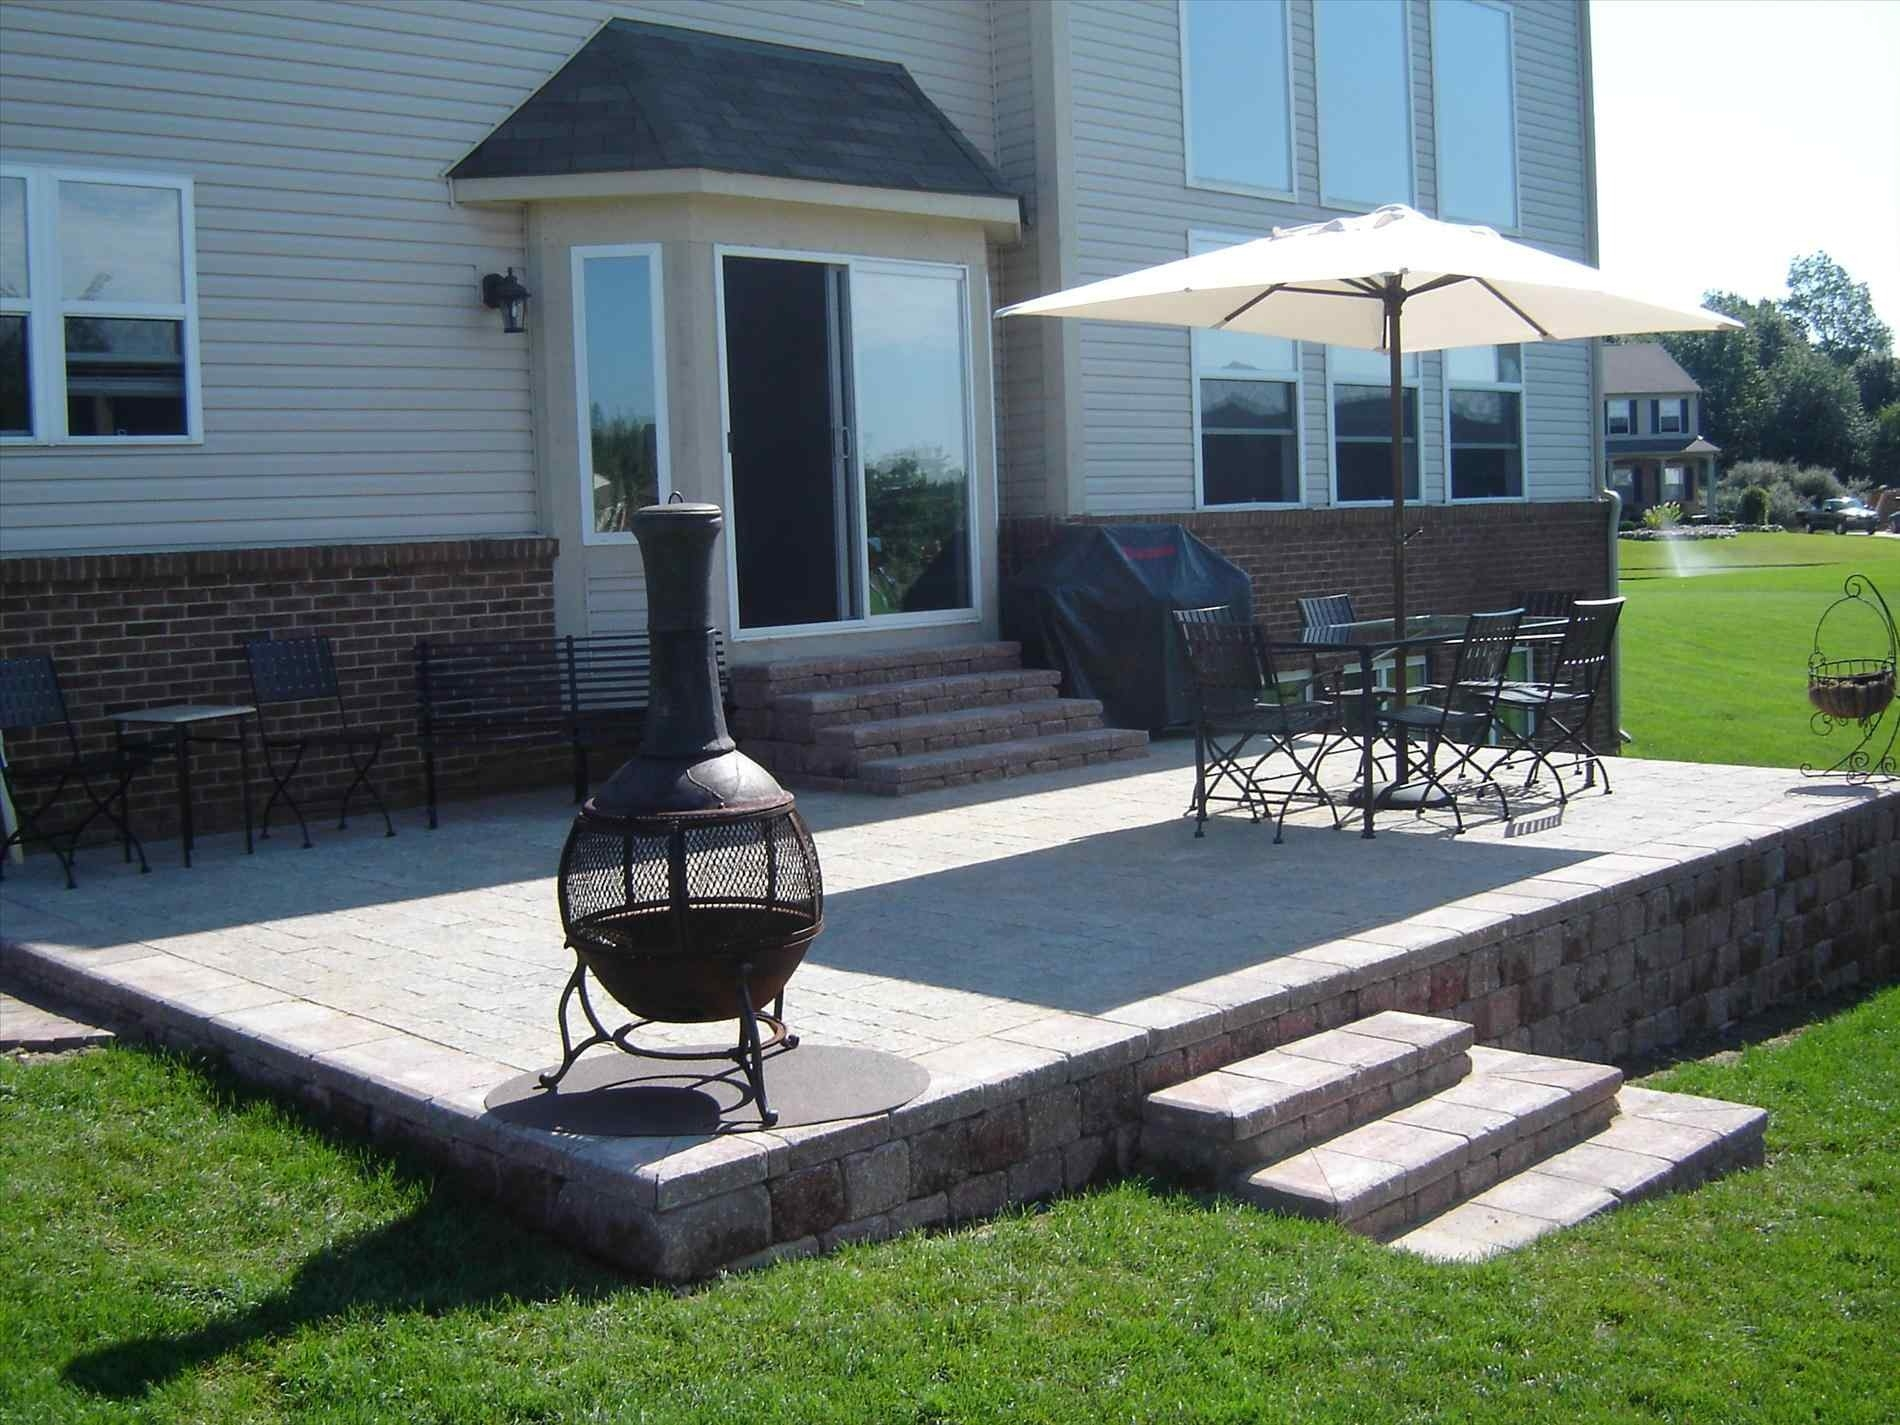 Backyards Backyard Steps For Deck Images Best Backdoor Patio Ideas Regarding Size 1900 X 1425